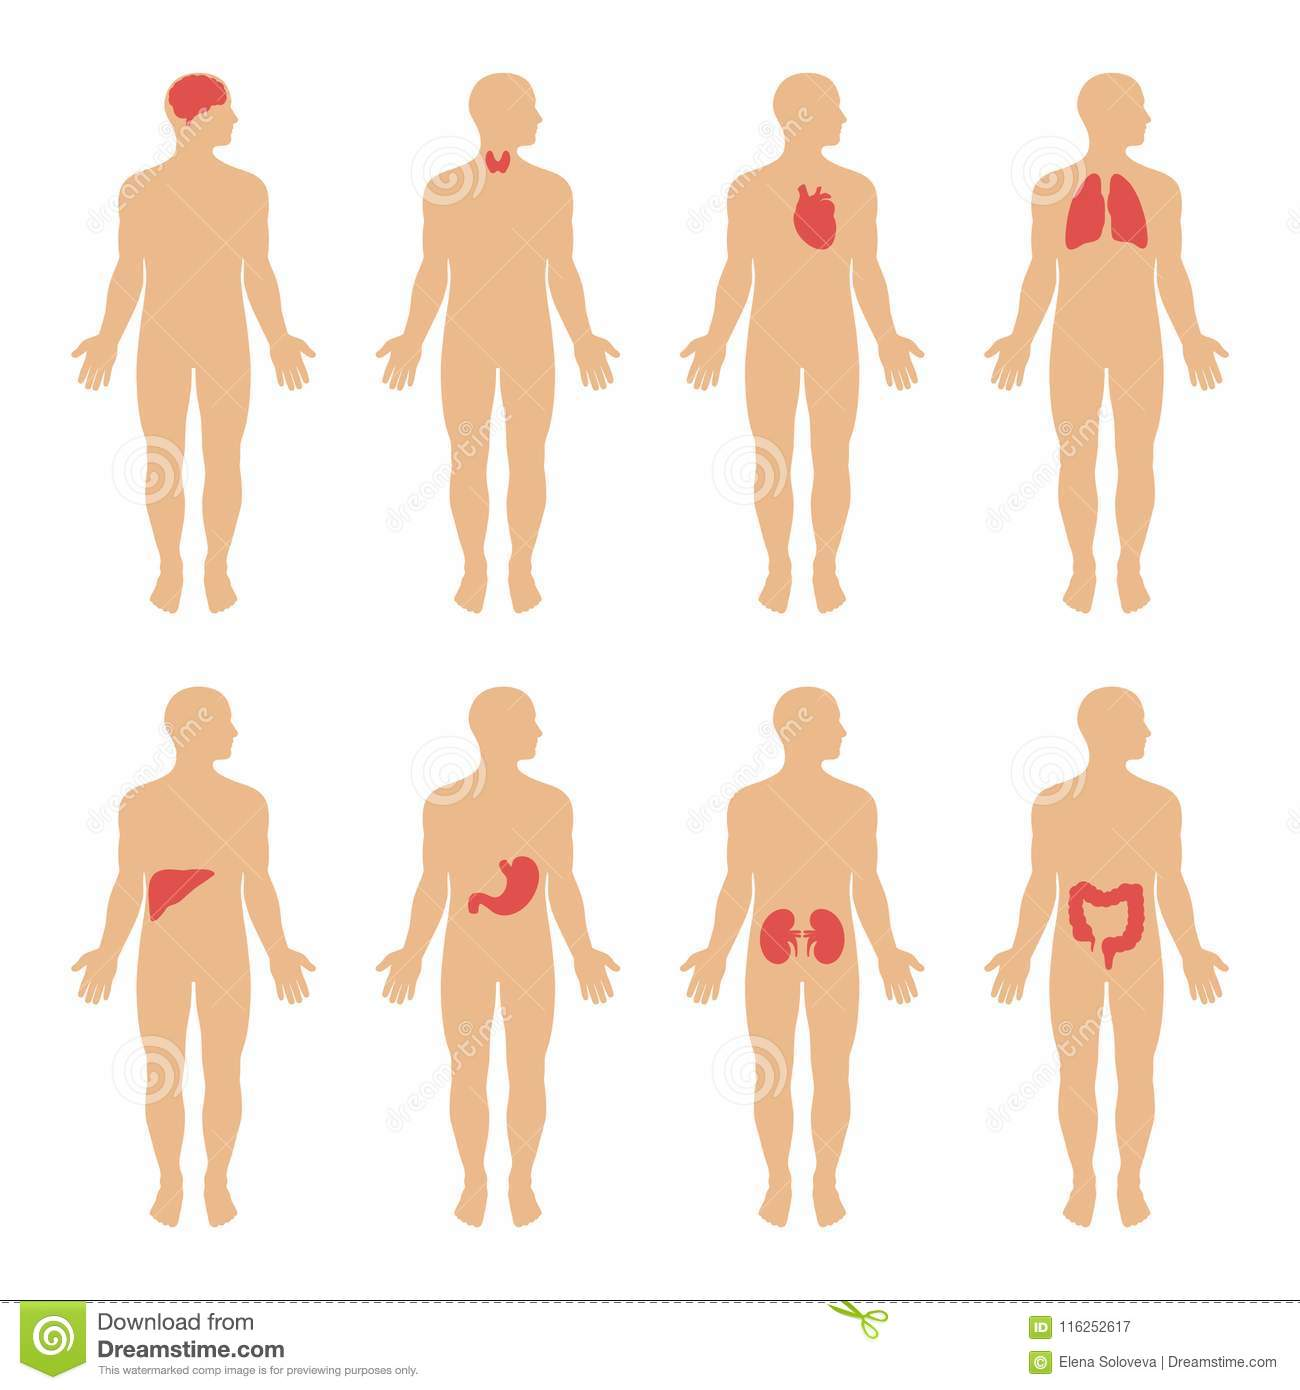 Diagram showing human body systems illustration stock vector diagram showing human body systems illustration ccuart Gallery